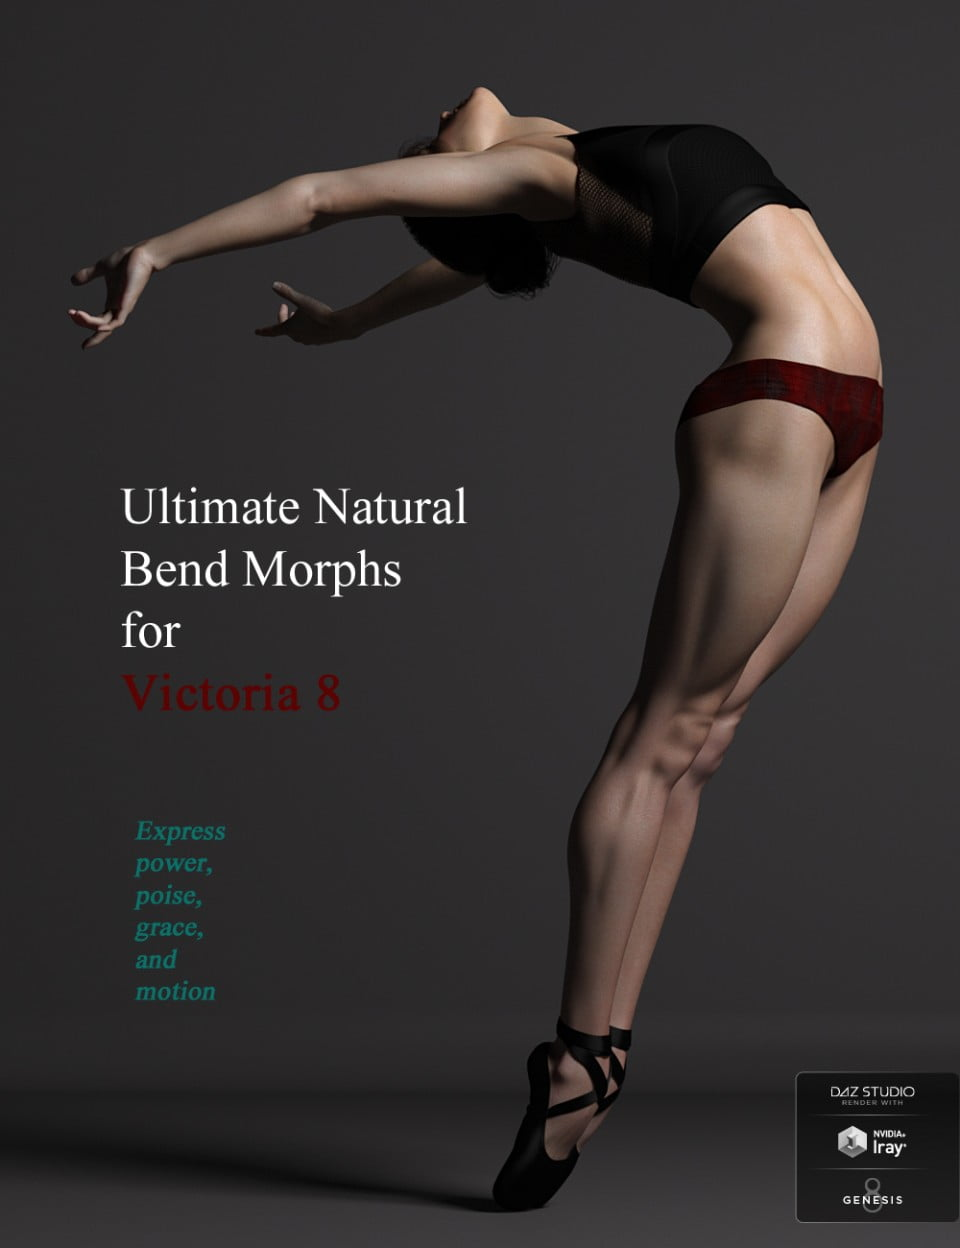 Ultimate Natural Bend Morphs for Victoria 8